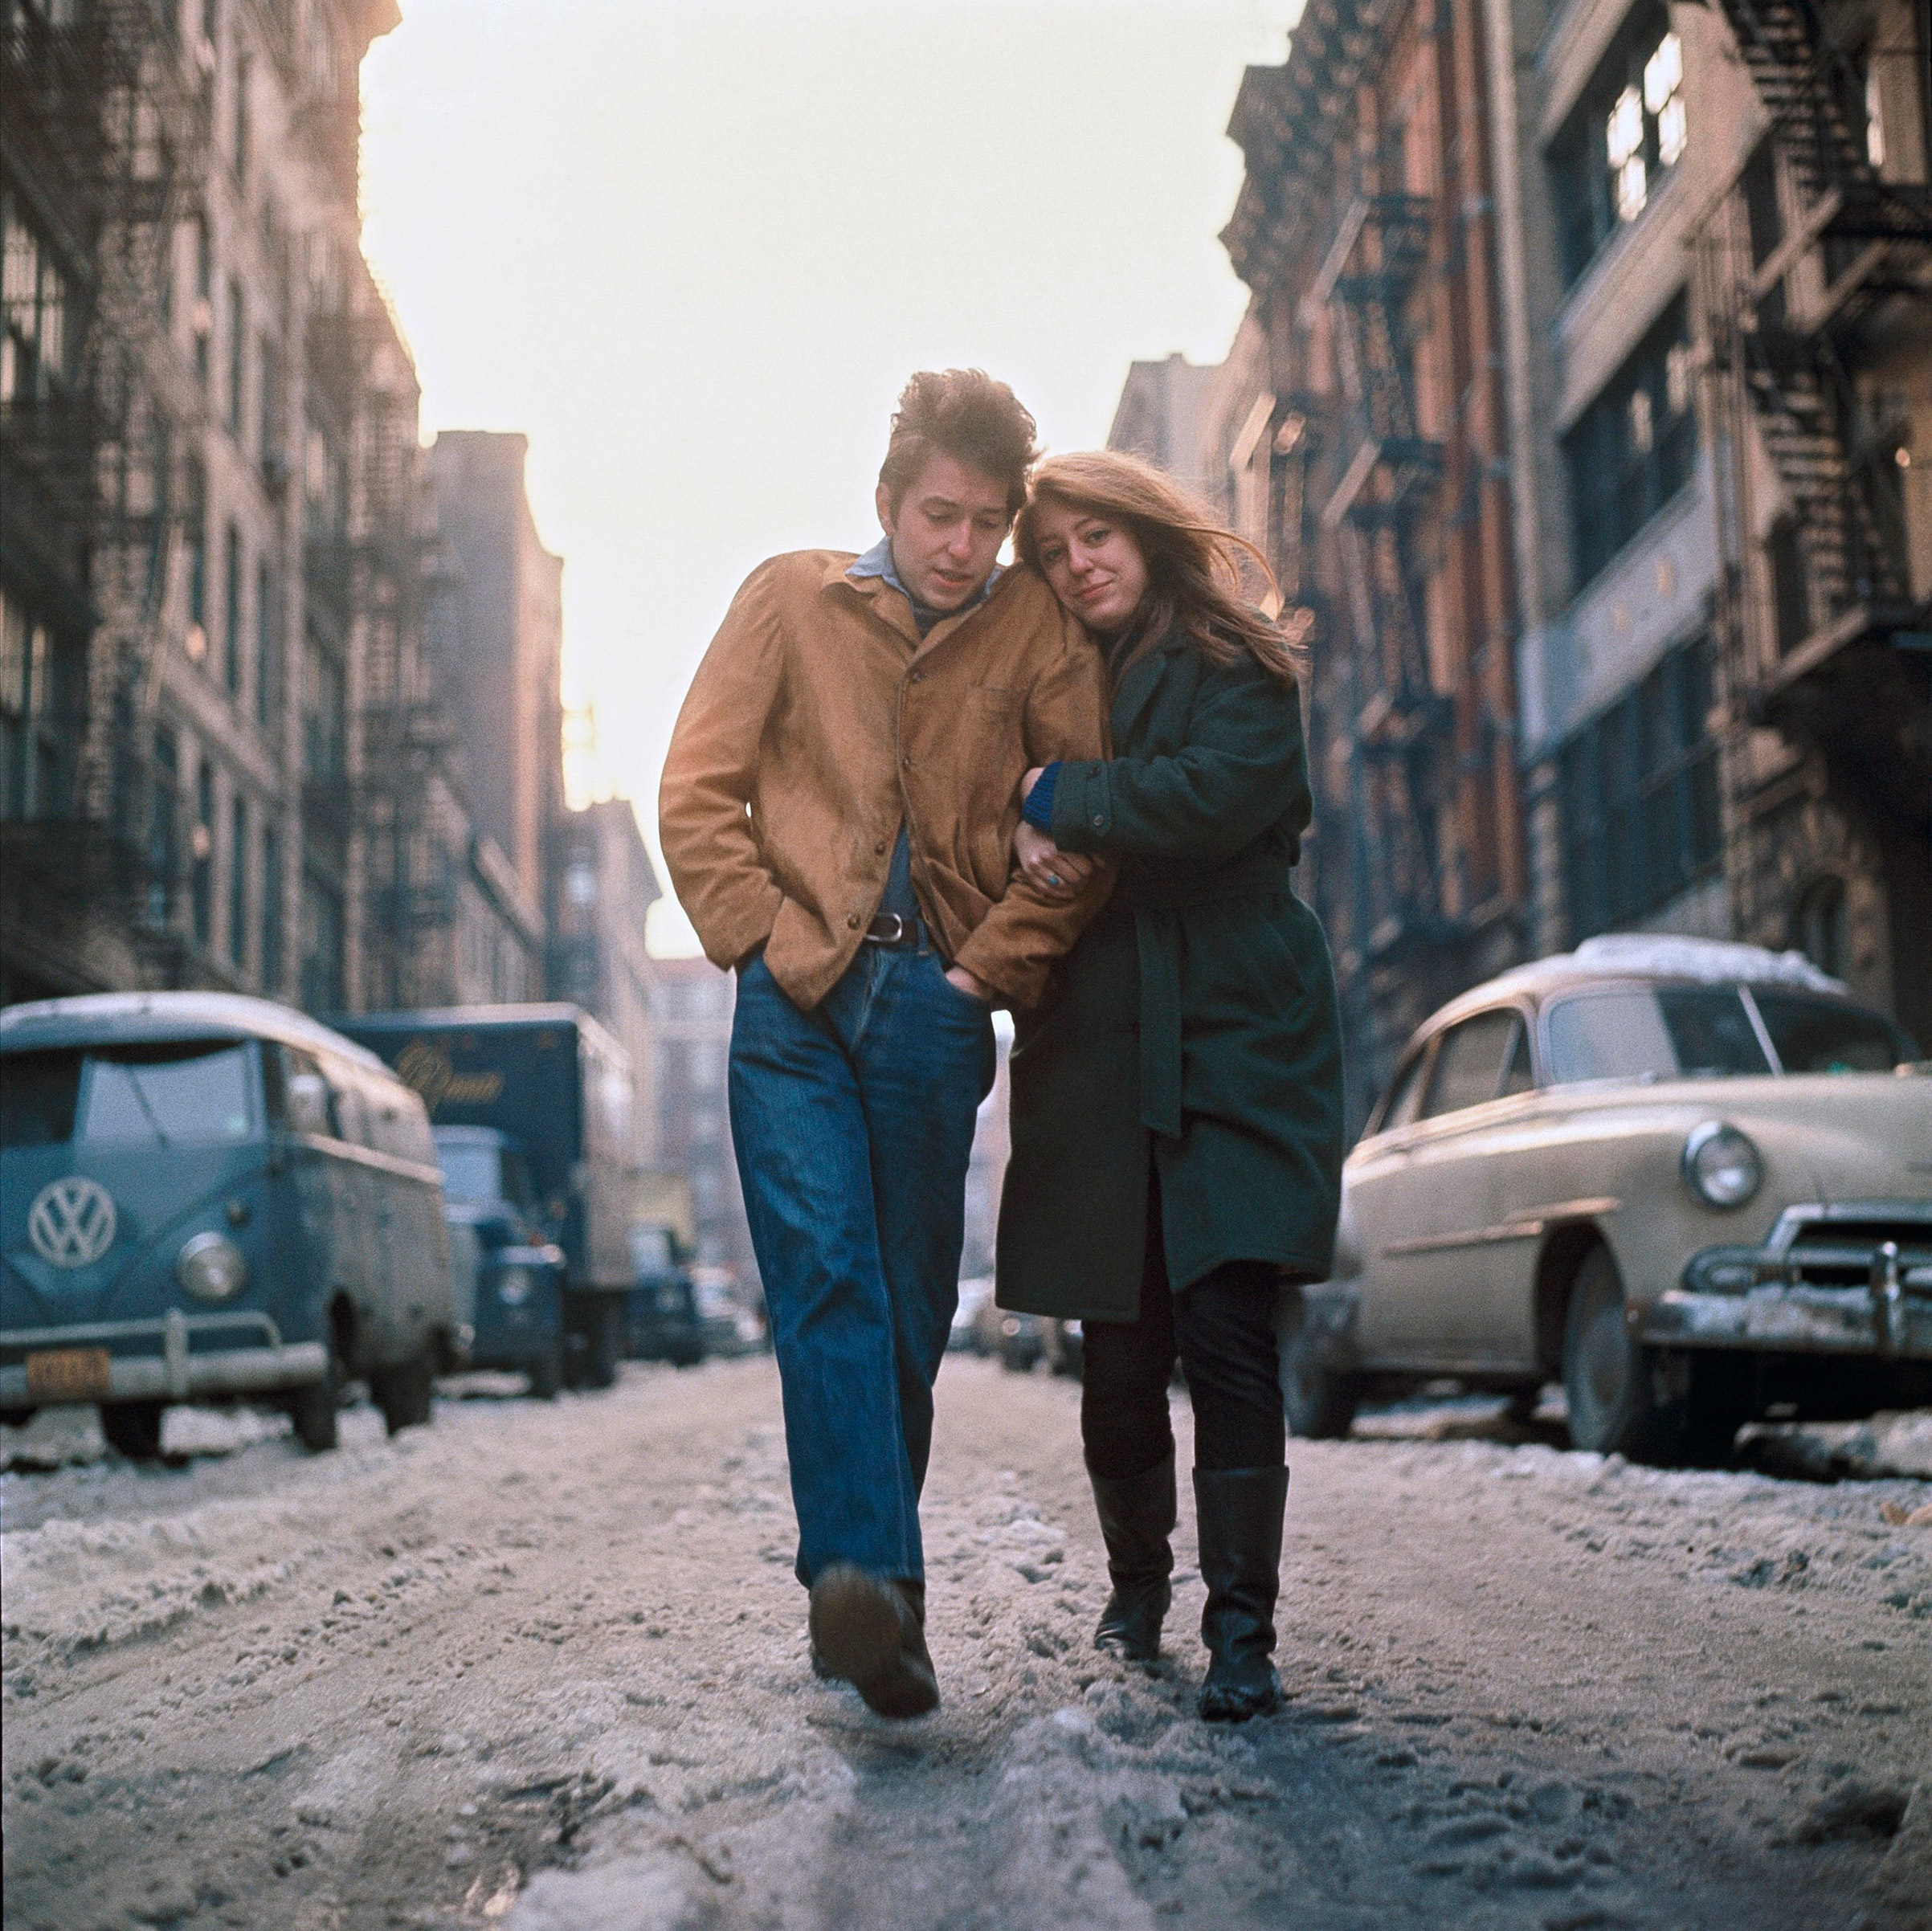 Bob Dylan and Suze Rotolo, 1963. This photo was used as the album cover for 'Freewheelin' with Bob Dylan.'